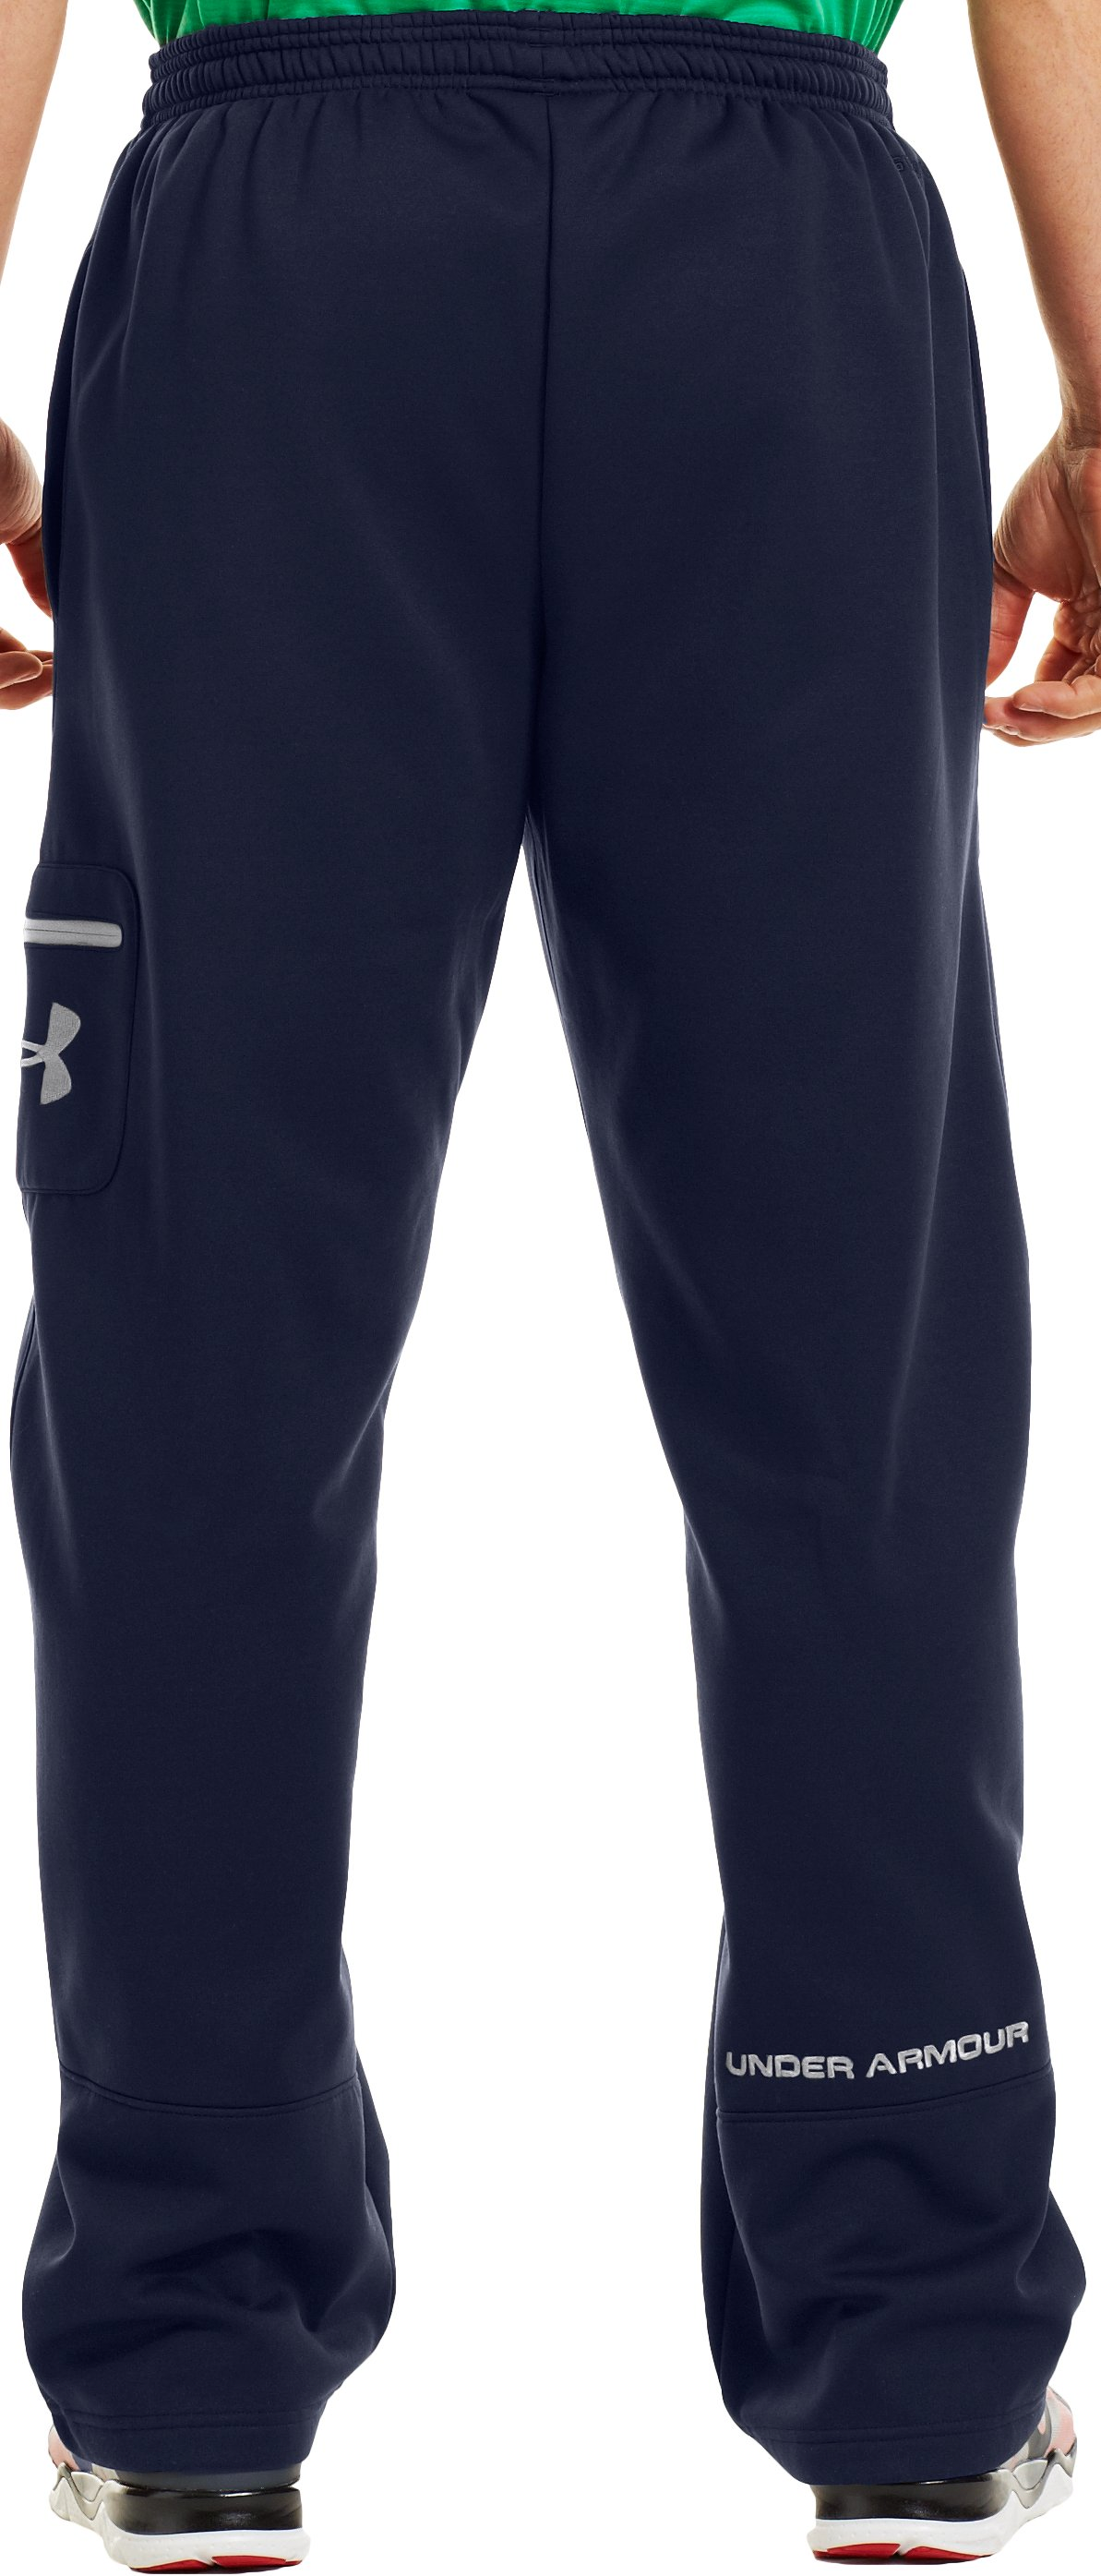 Men's Armour® Fleece Storm Cargo Pocket Pants, Midnight Navy